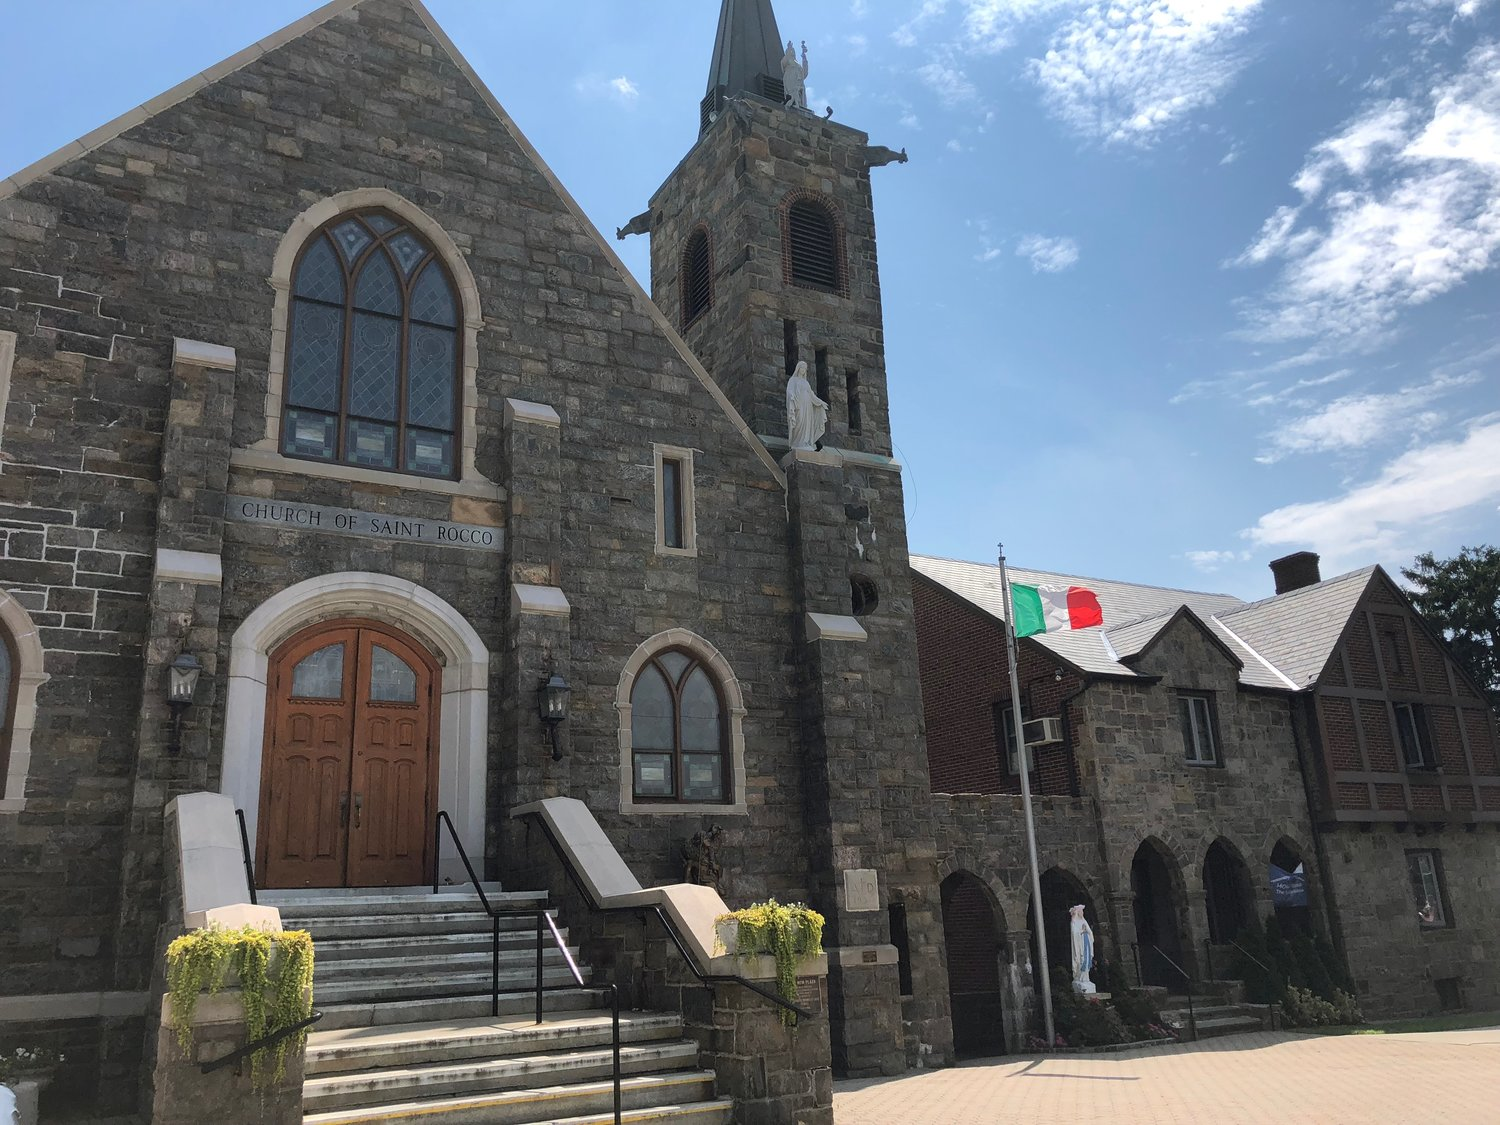 An alleged victim of the Rev. Eligio Della Rosa is asking that the priest's name be removed from a parish center at the Church of St. Rocco.